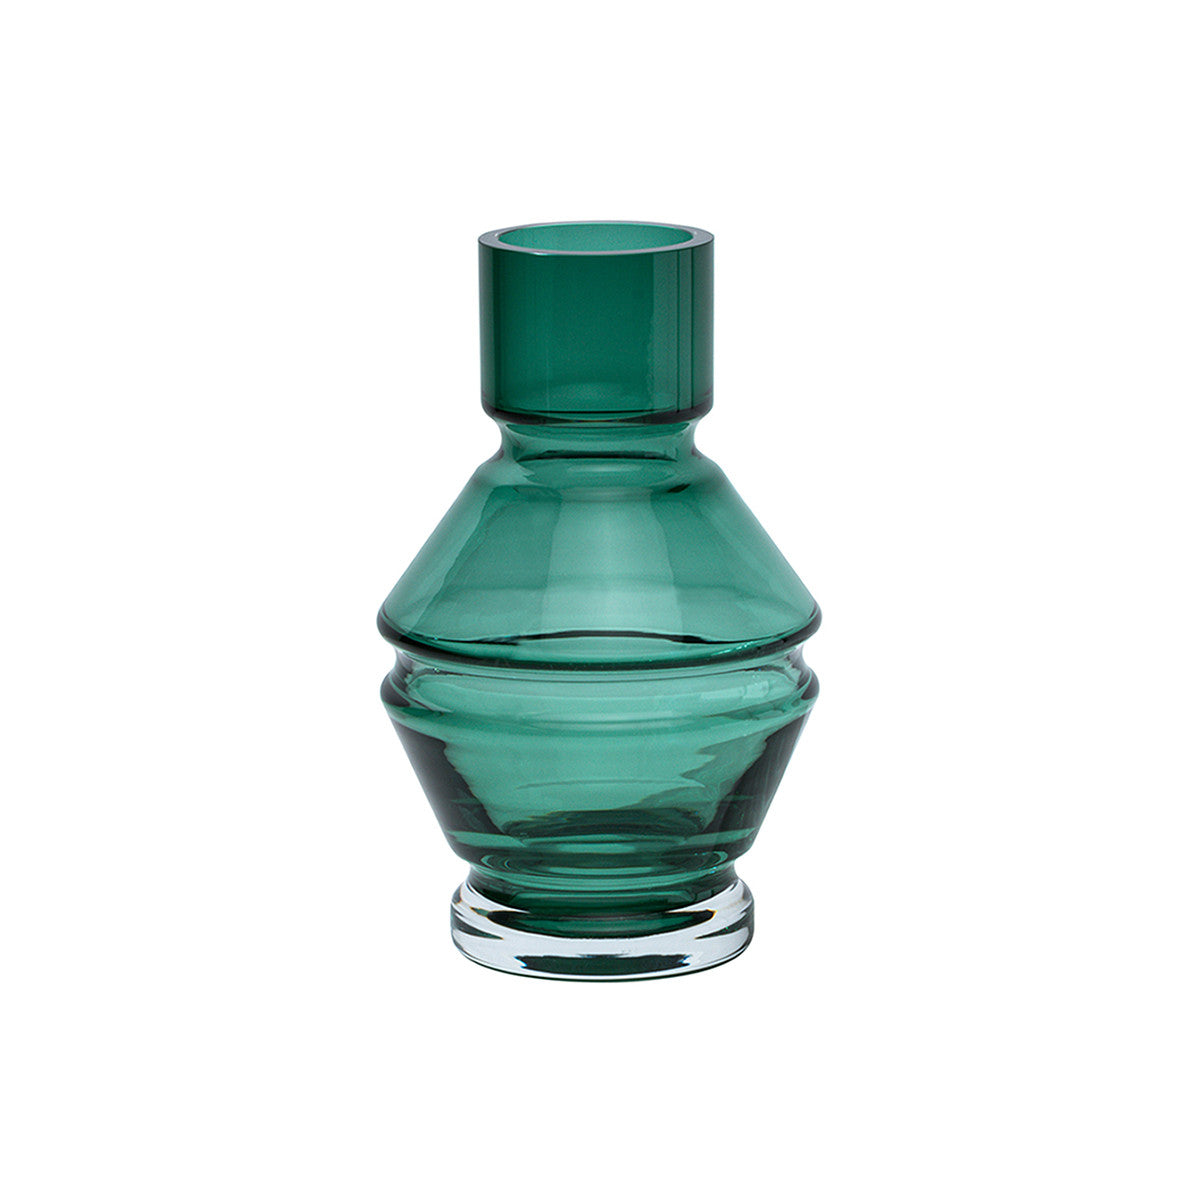 Raawii Green Glass Vase Small Relæ